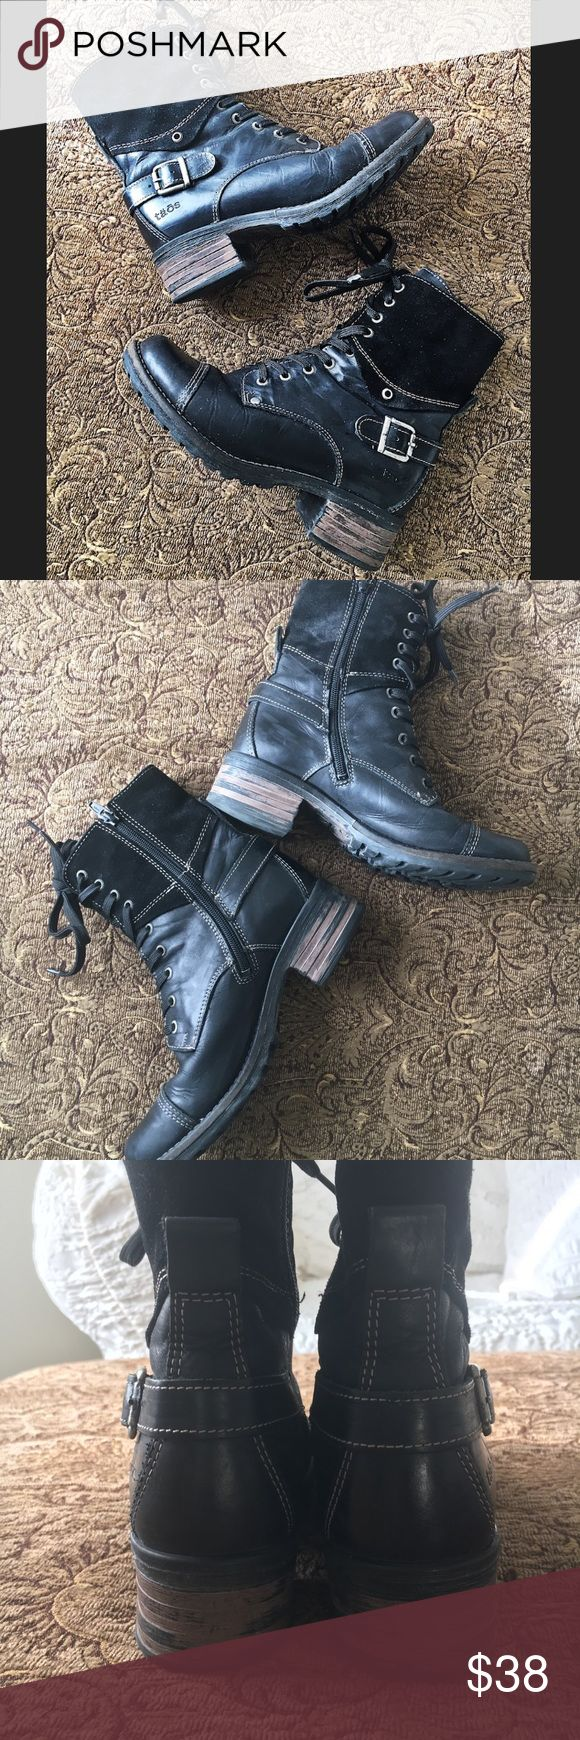 """Taos Boots Cute pre loved boots ..leather and suede ..lace up detail.. inside zip entry.. lug sole.. heel:1 3/4"""" height:8"""" euro size 37 .. us 6/6.5.. Taos Footwear Shoes Ankle Boots & Booties"""